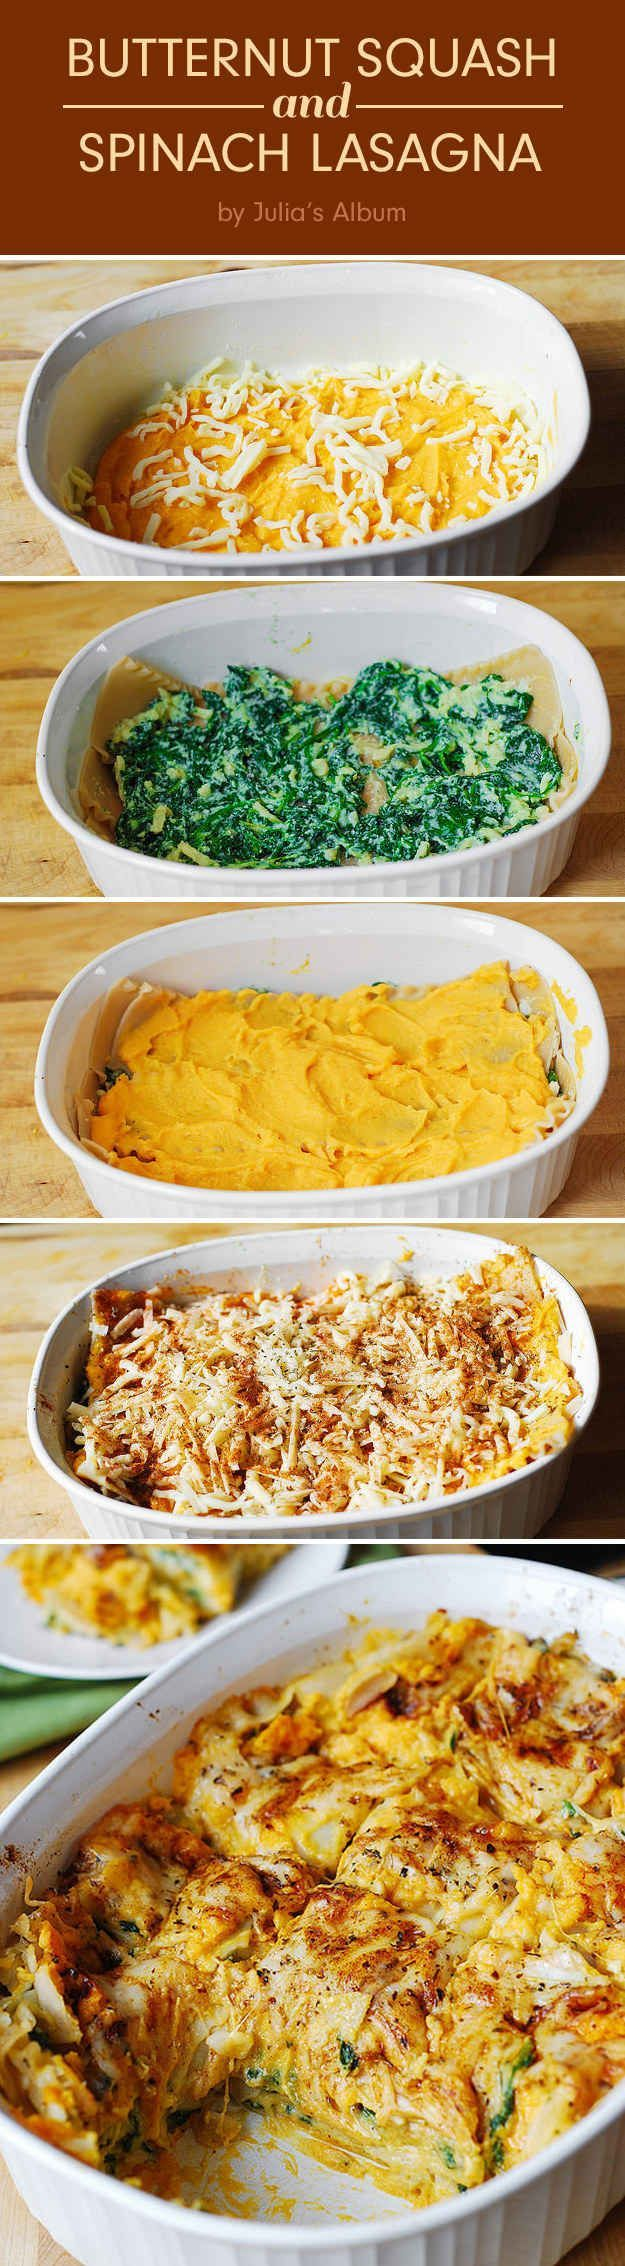 Butternut Squash and Spinach Lasagna. Use the gluten free instructions that are included in the recipe.